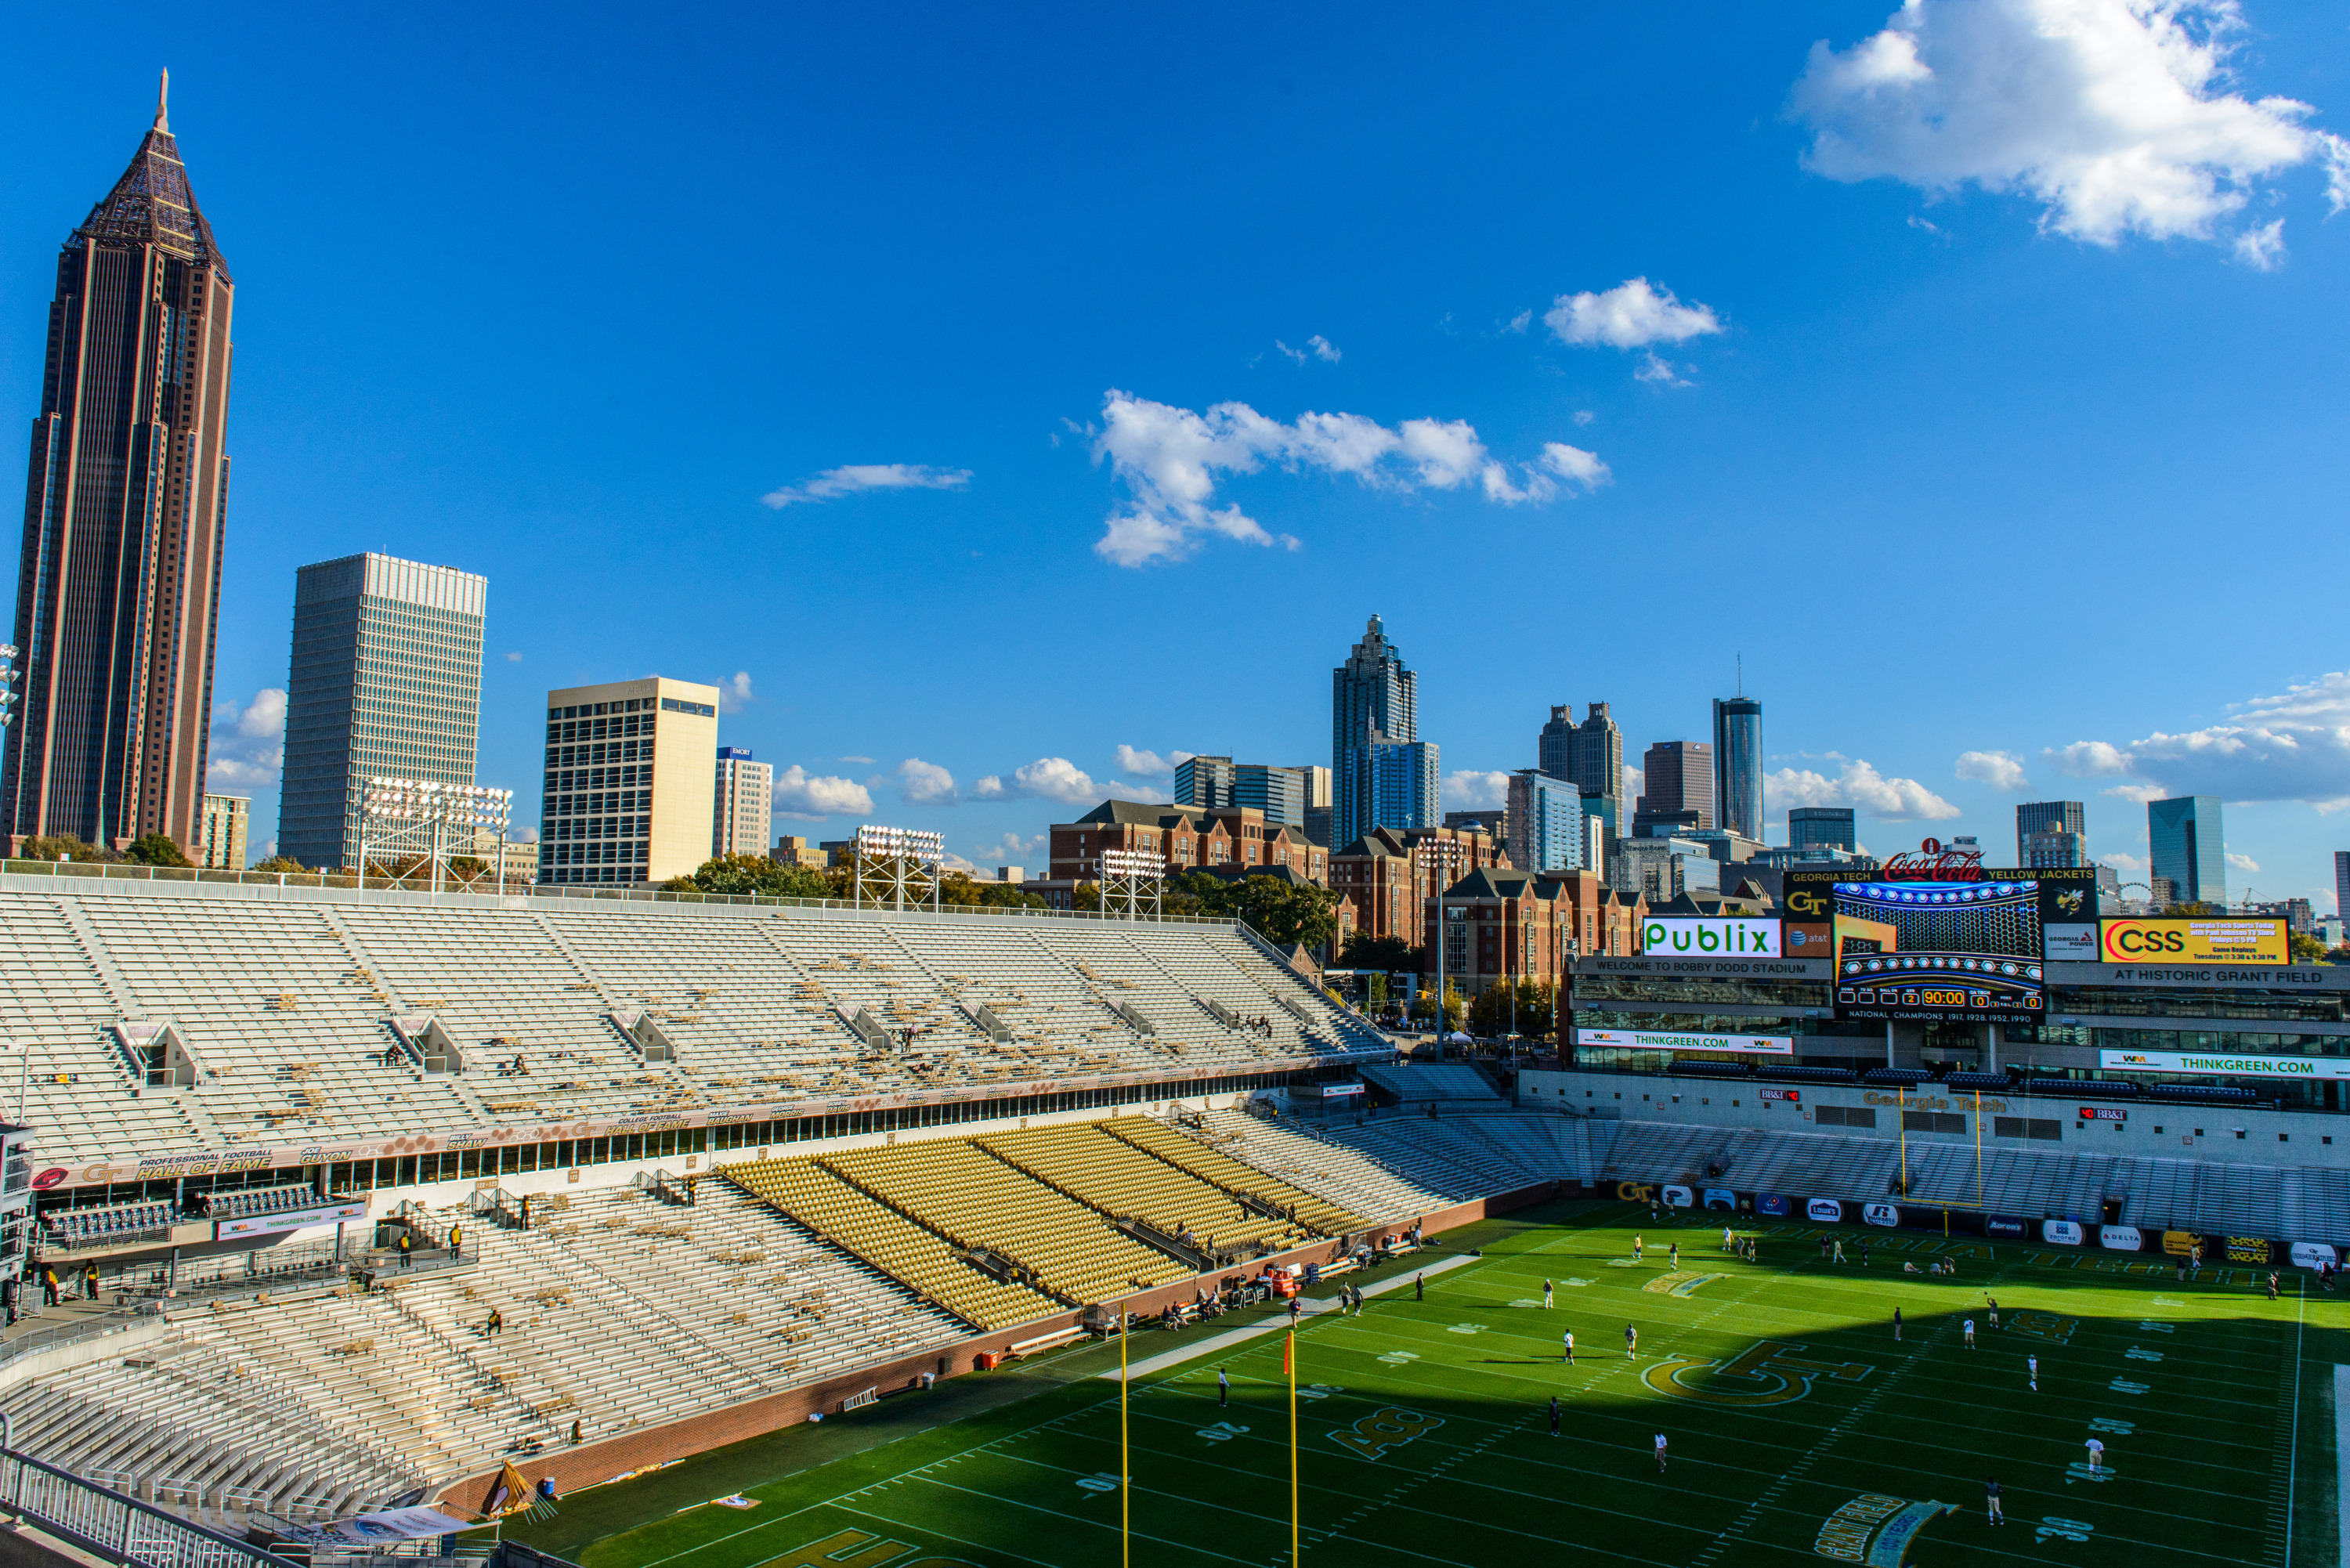 The Atlanta skyline is visible from the upper stands of Bobby Dodd Stadium prior to the game.